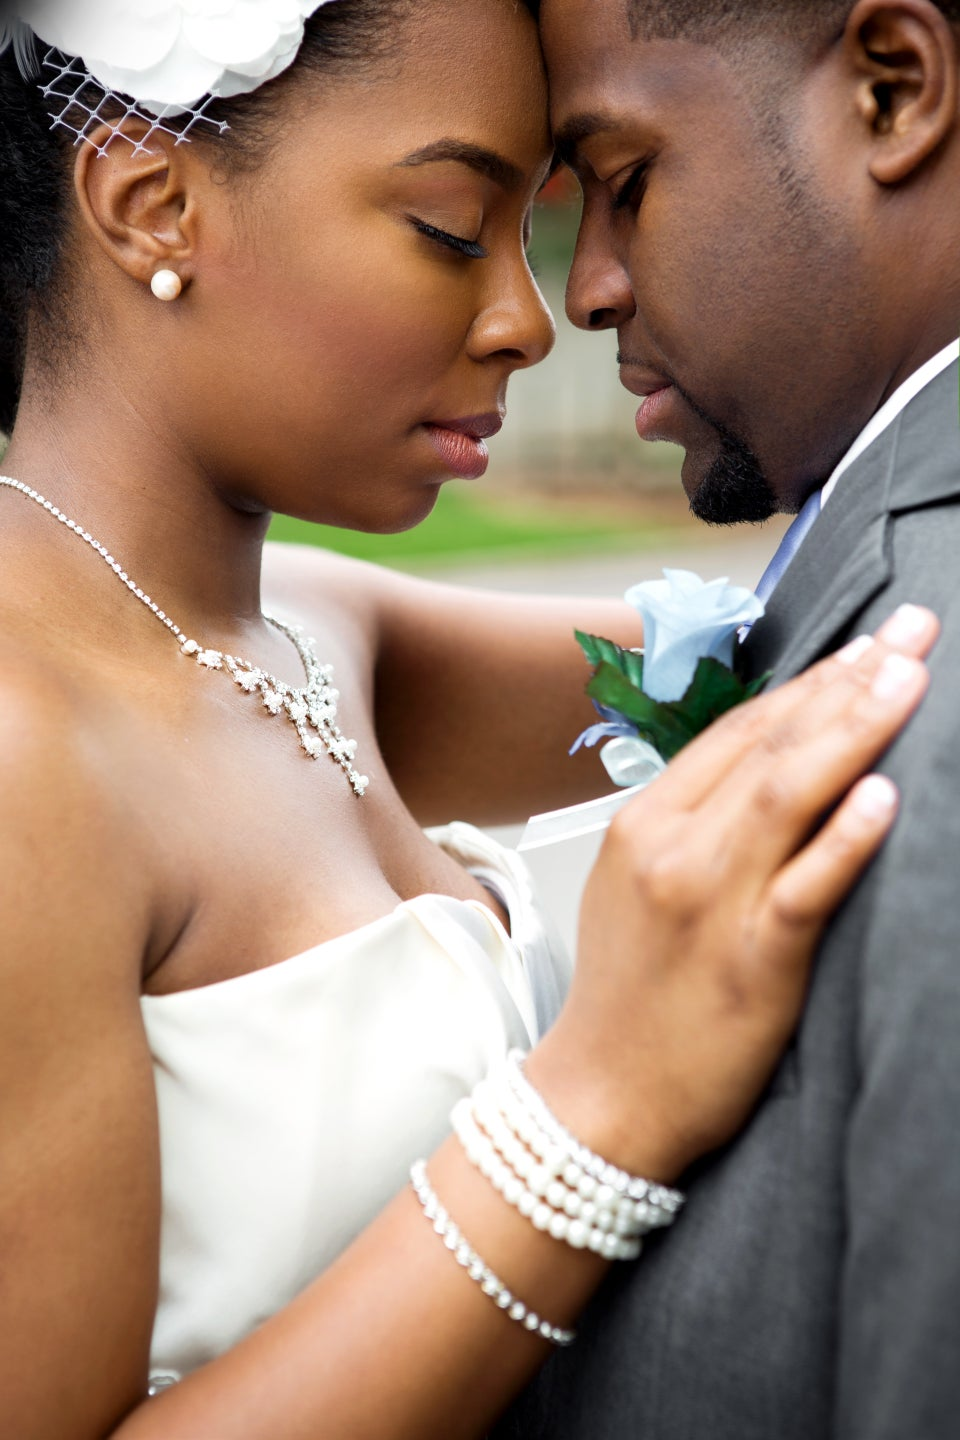 Is It Time To Renew Your Vows? Here Are 7 Scenarios Where It Makes Sense